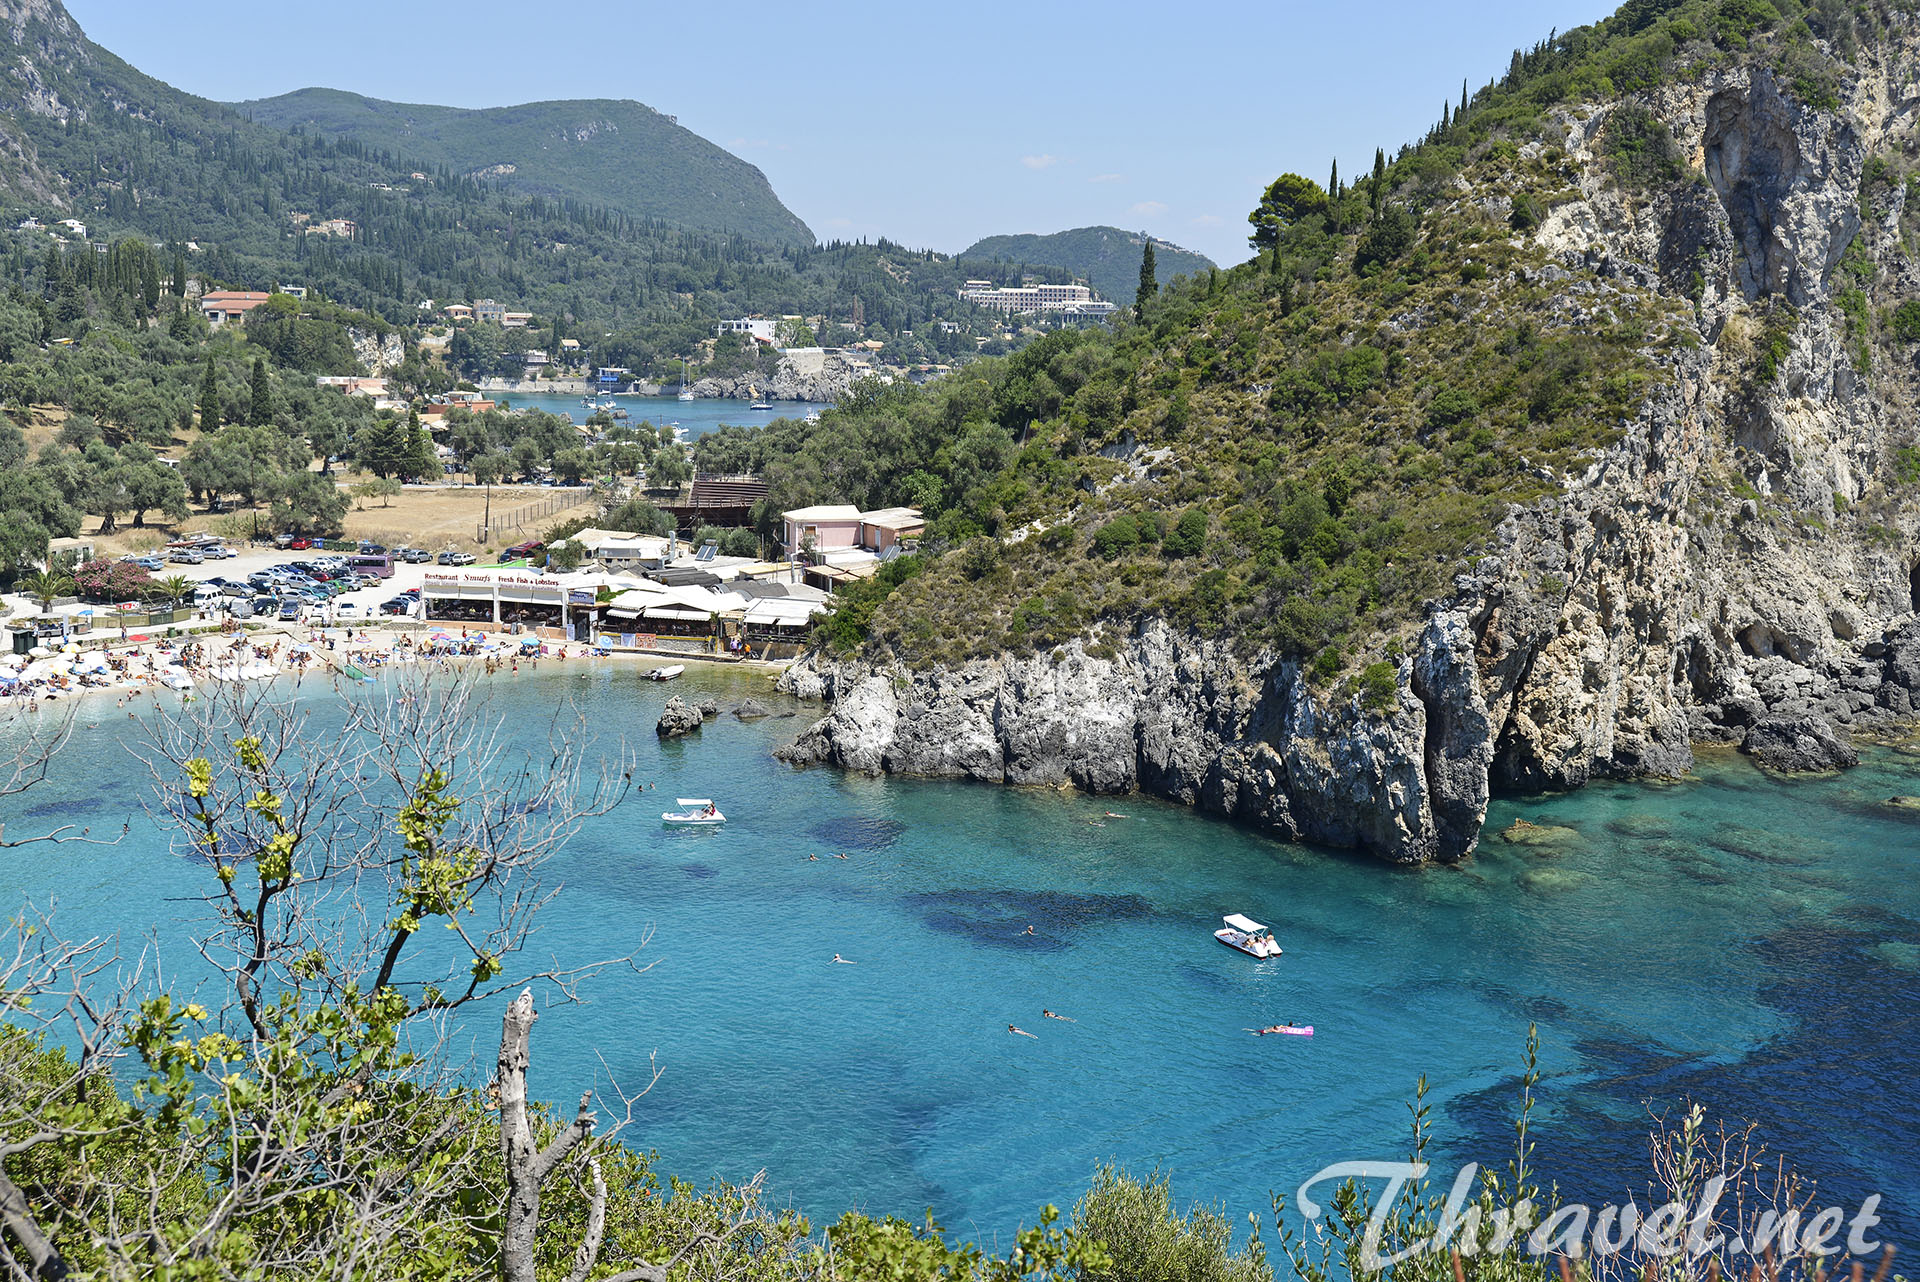 Paleokastritsa - one of the Corfu's most beautiful beaches